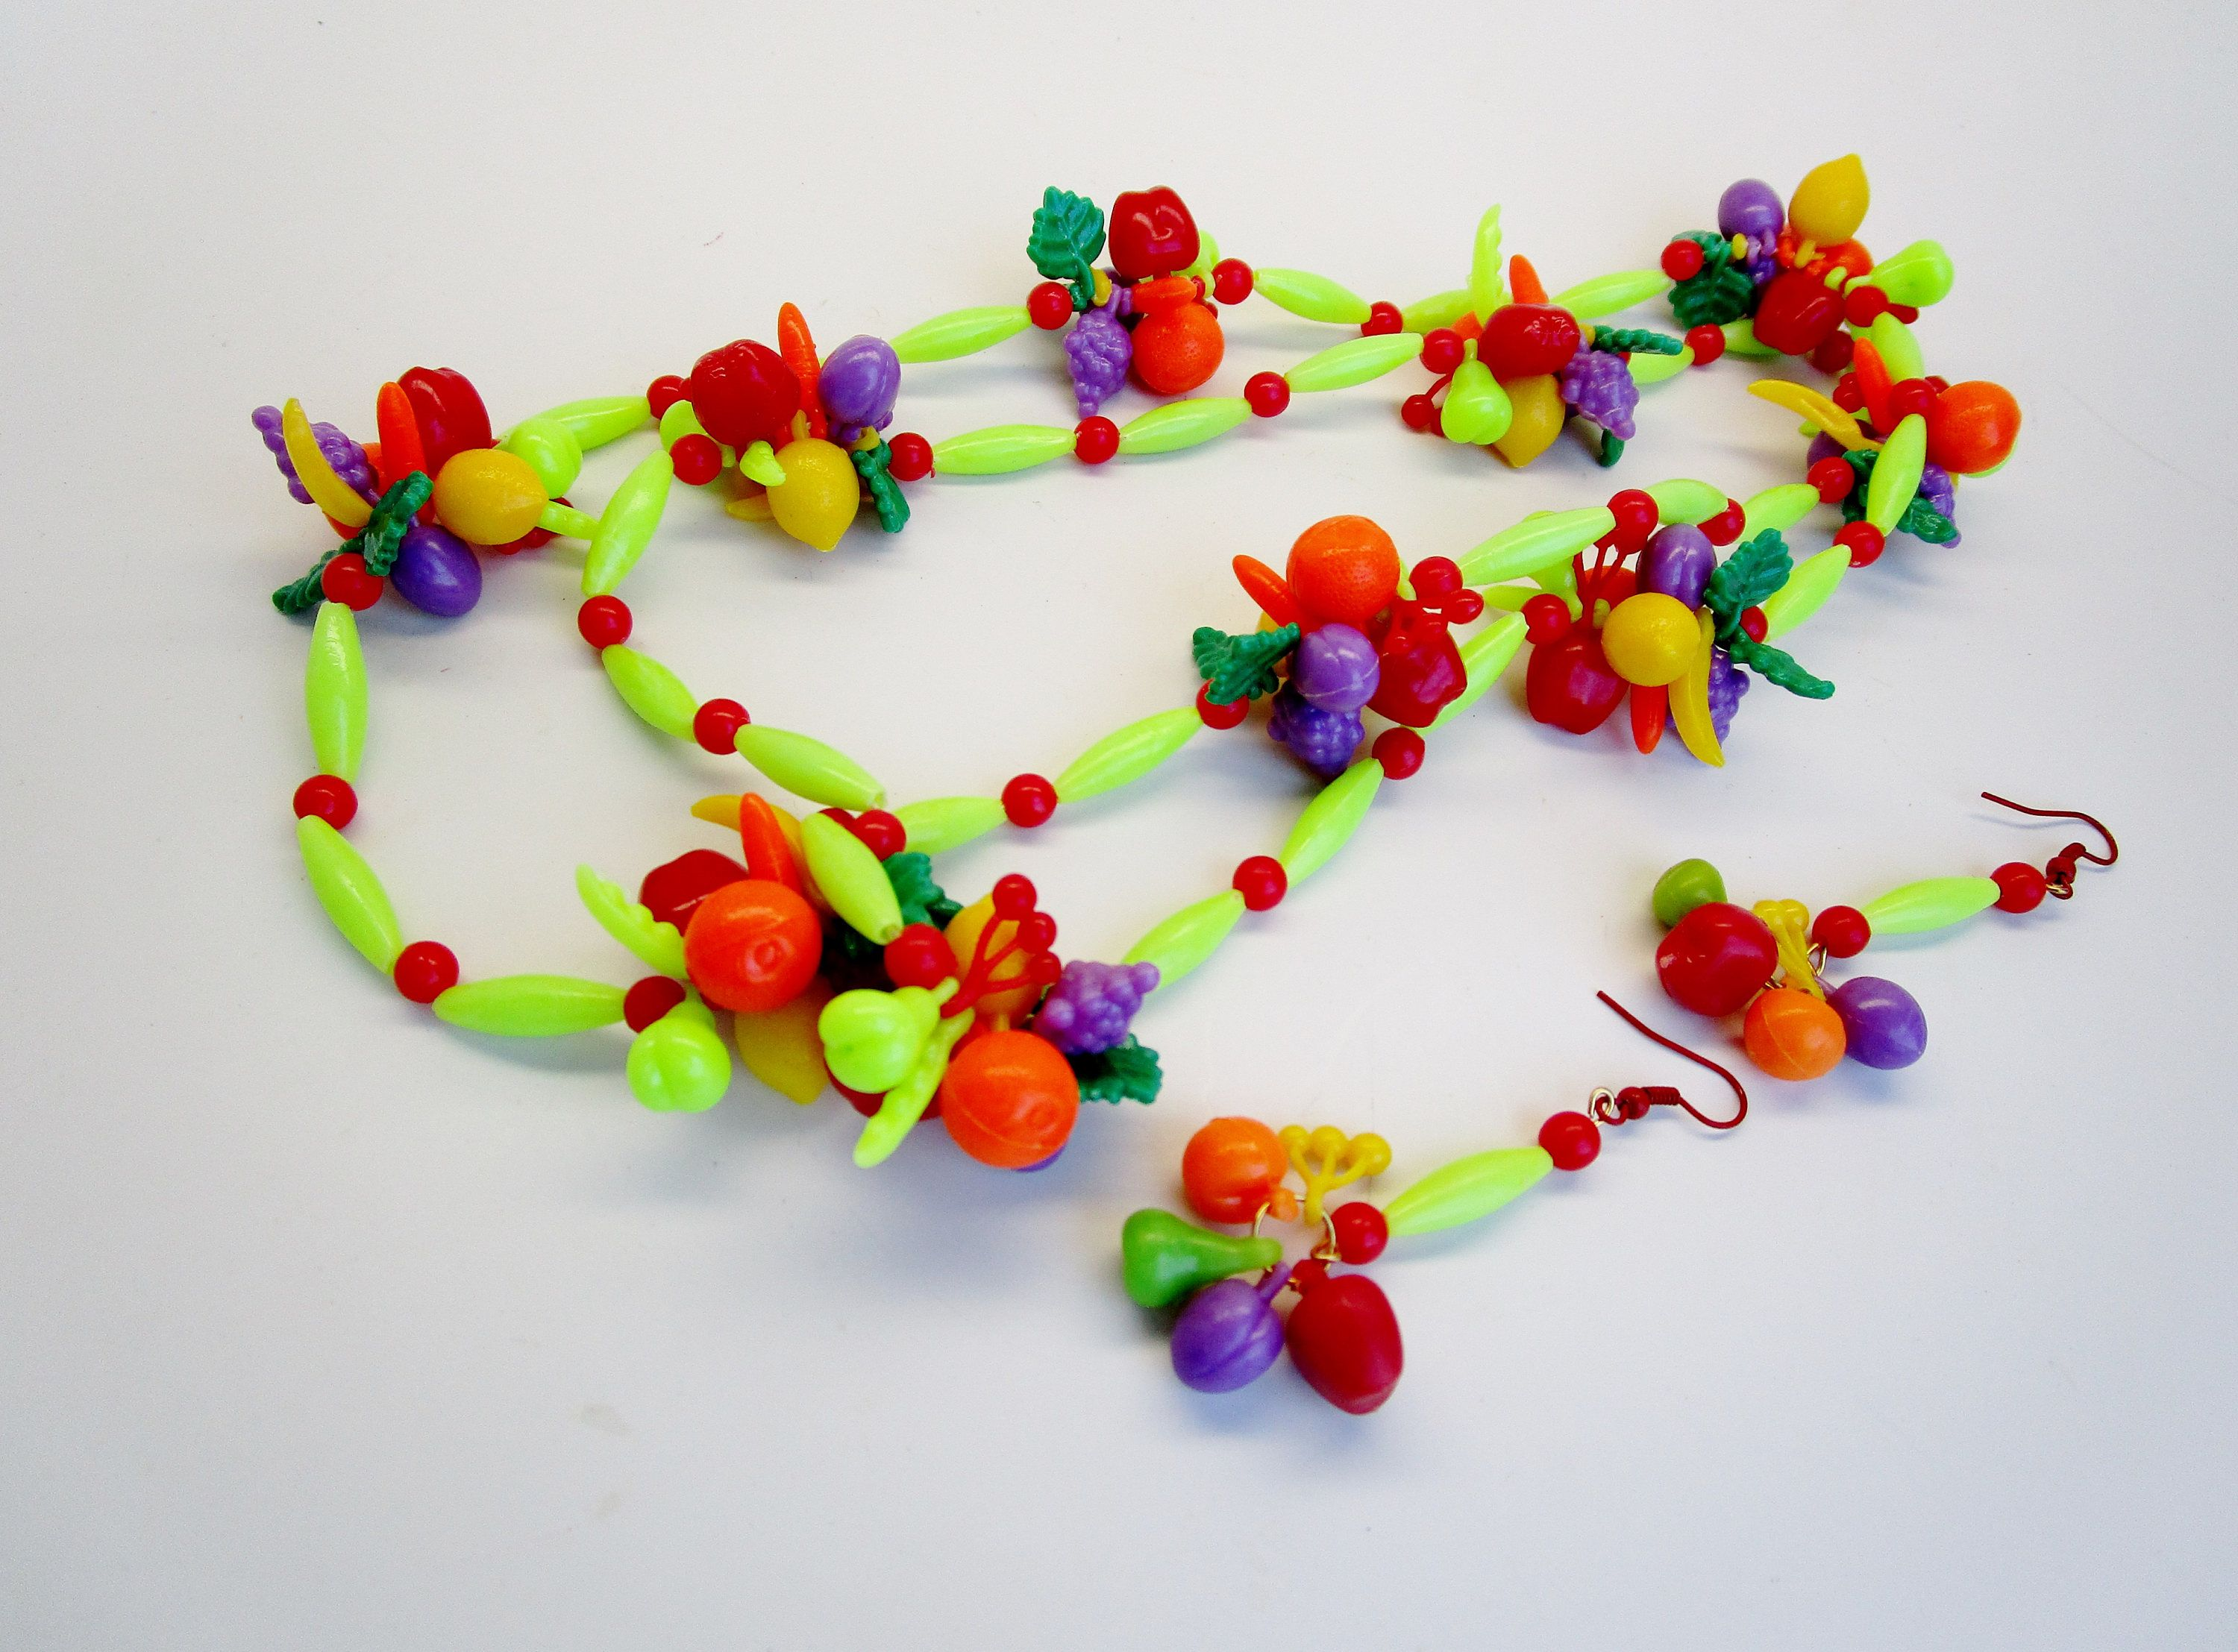 "Vintage Lucite Fruit Salad Necklace 40"" Earrings Set Tutti Frutti Carman Chunky Veggie Orange Lemons Grapes Pea Pods Red Apples Bananas by BagsnBling on Etsy"